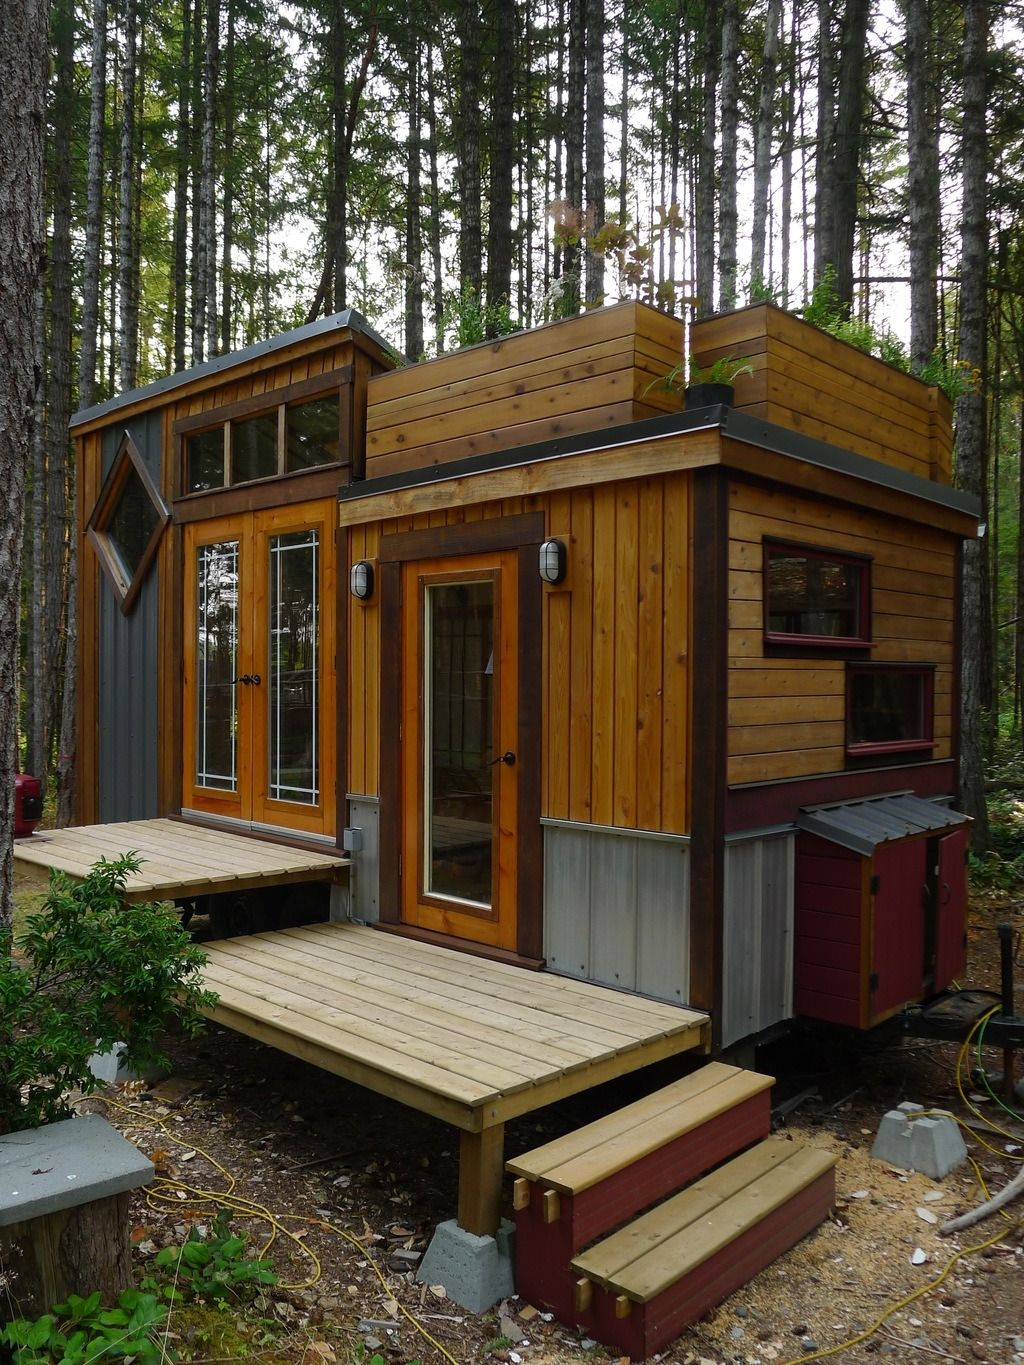 Room Of Requirement 150 Sq Ft Tiny House Exterior Tiny House